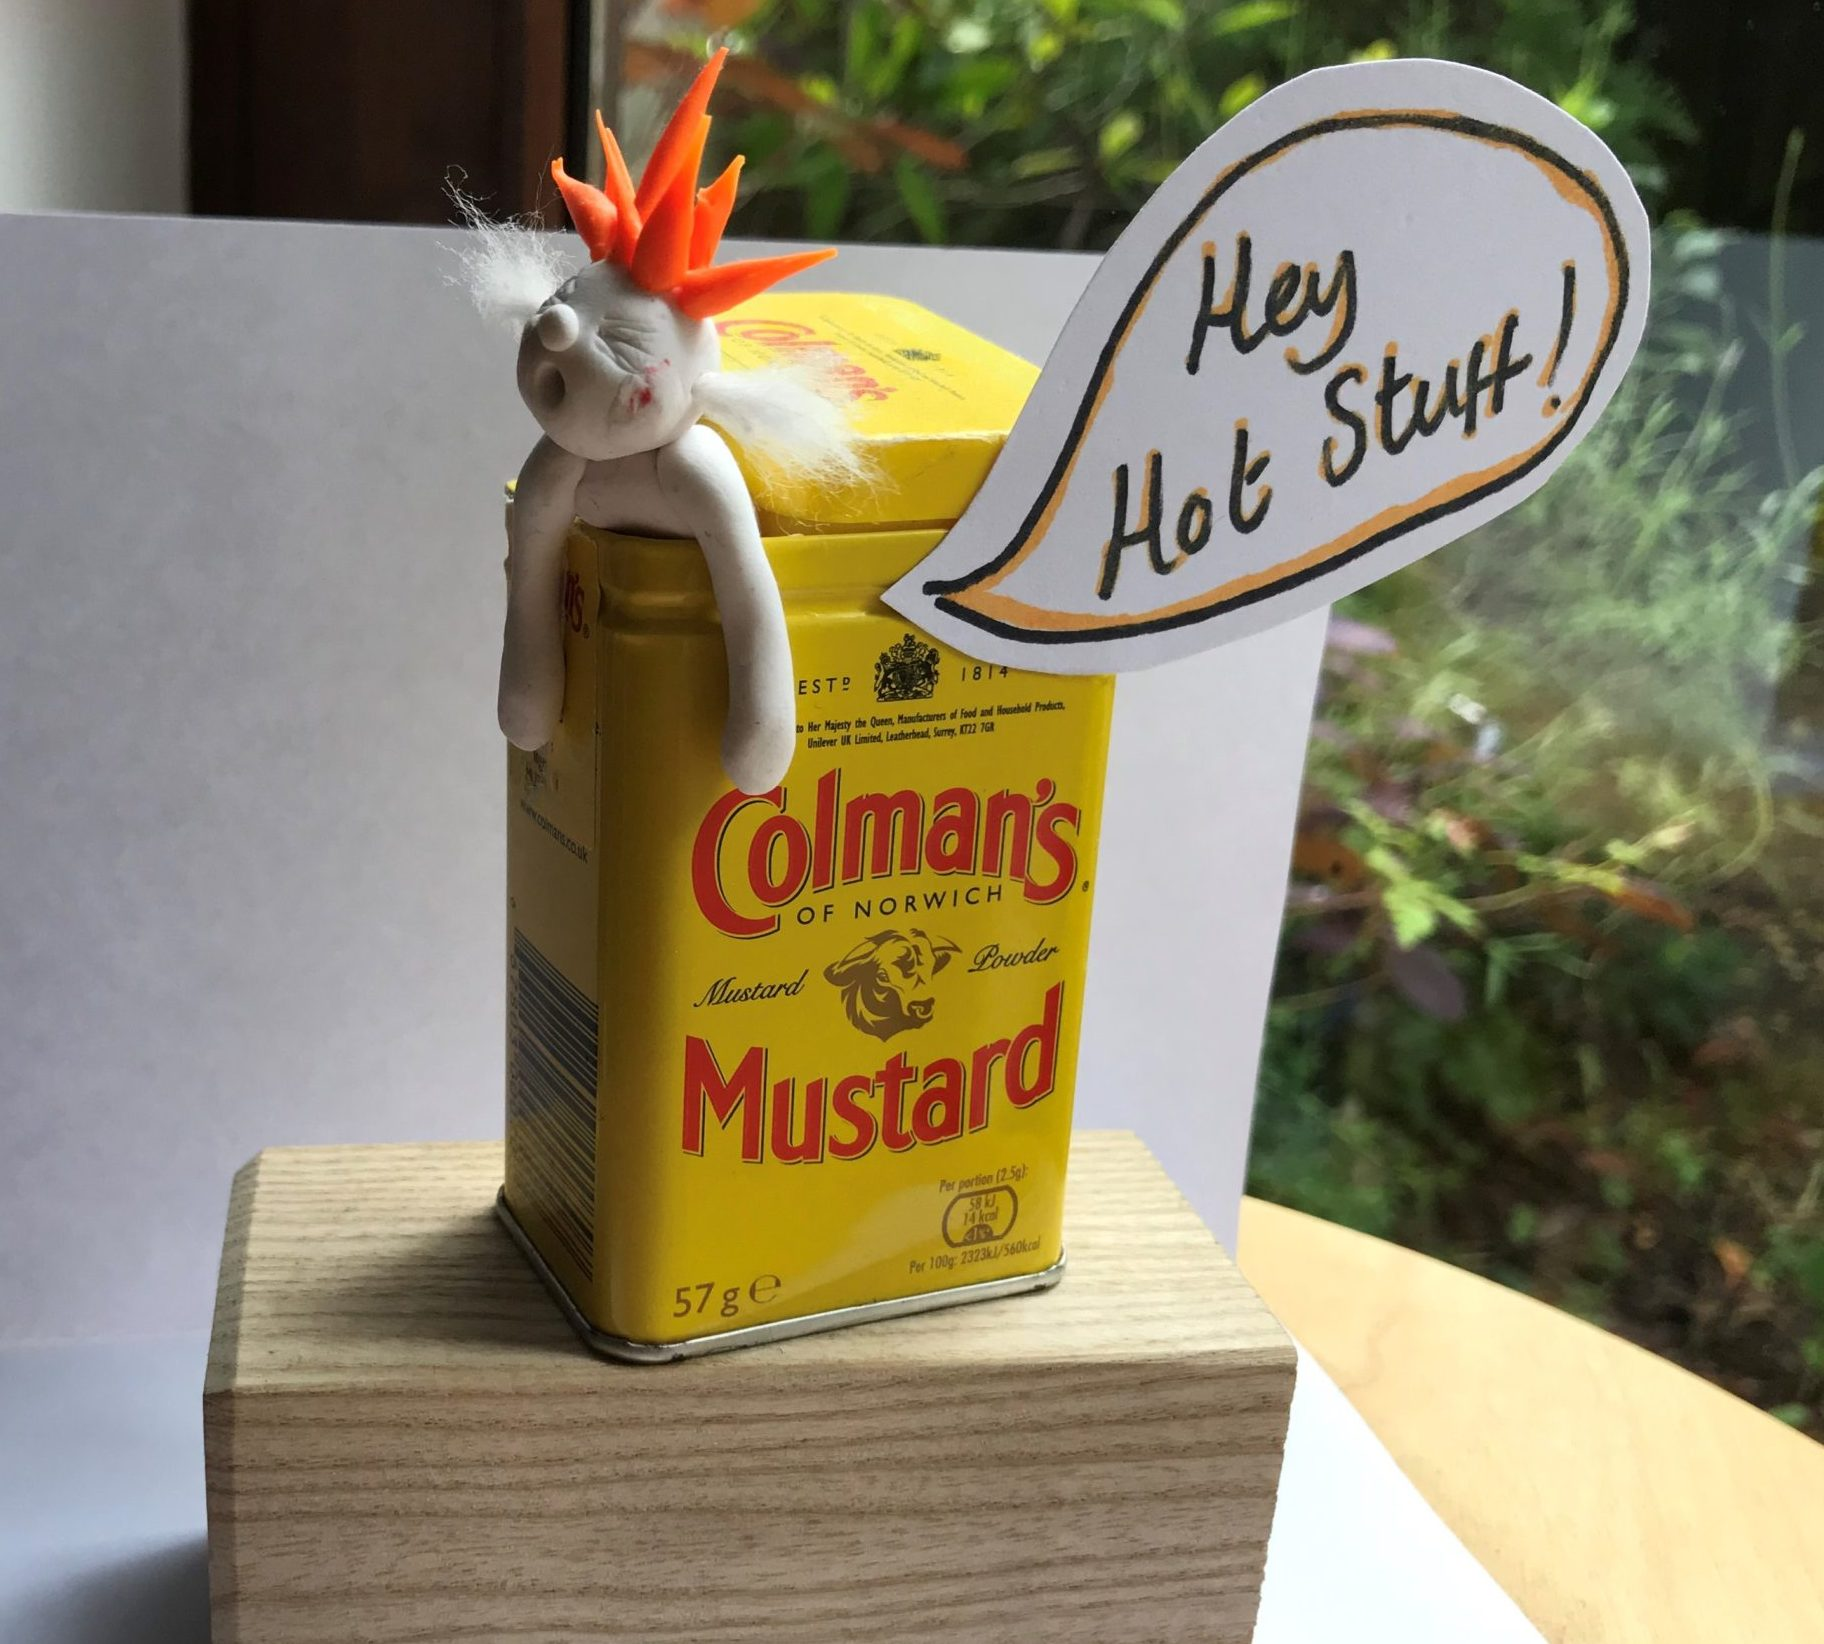 Mustard man scuplture!